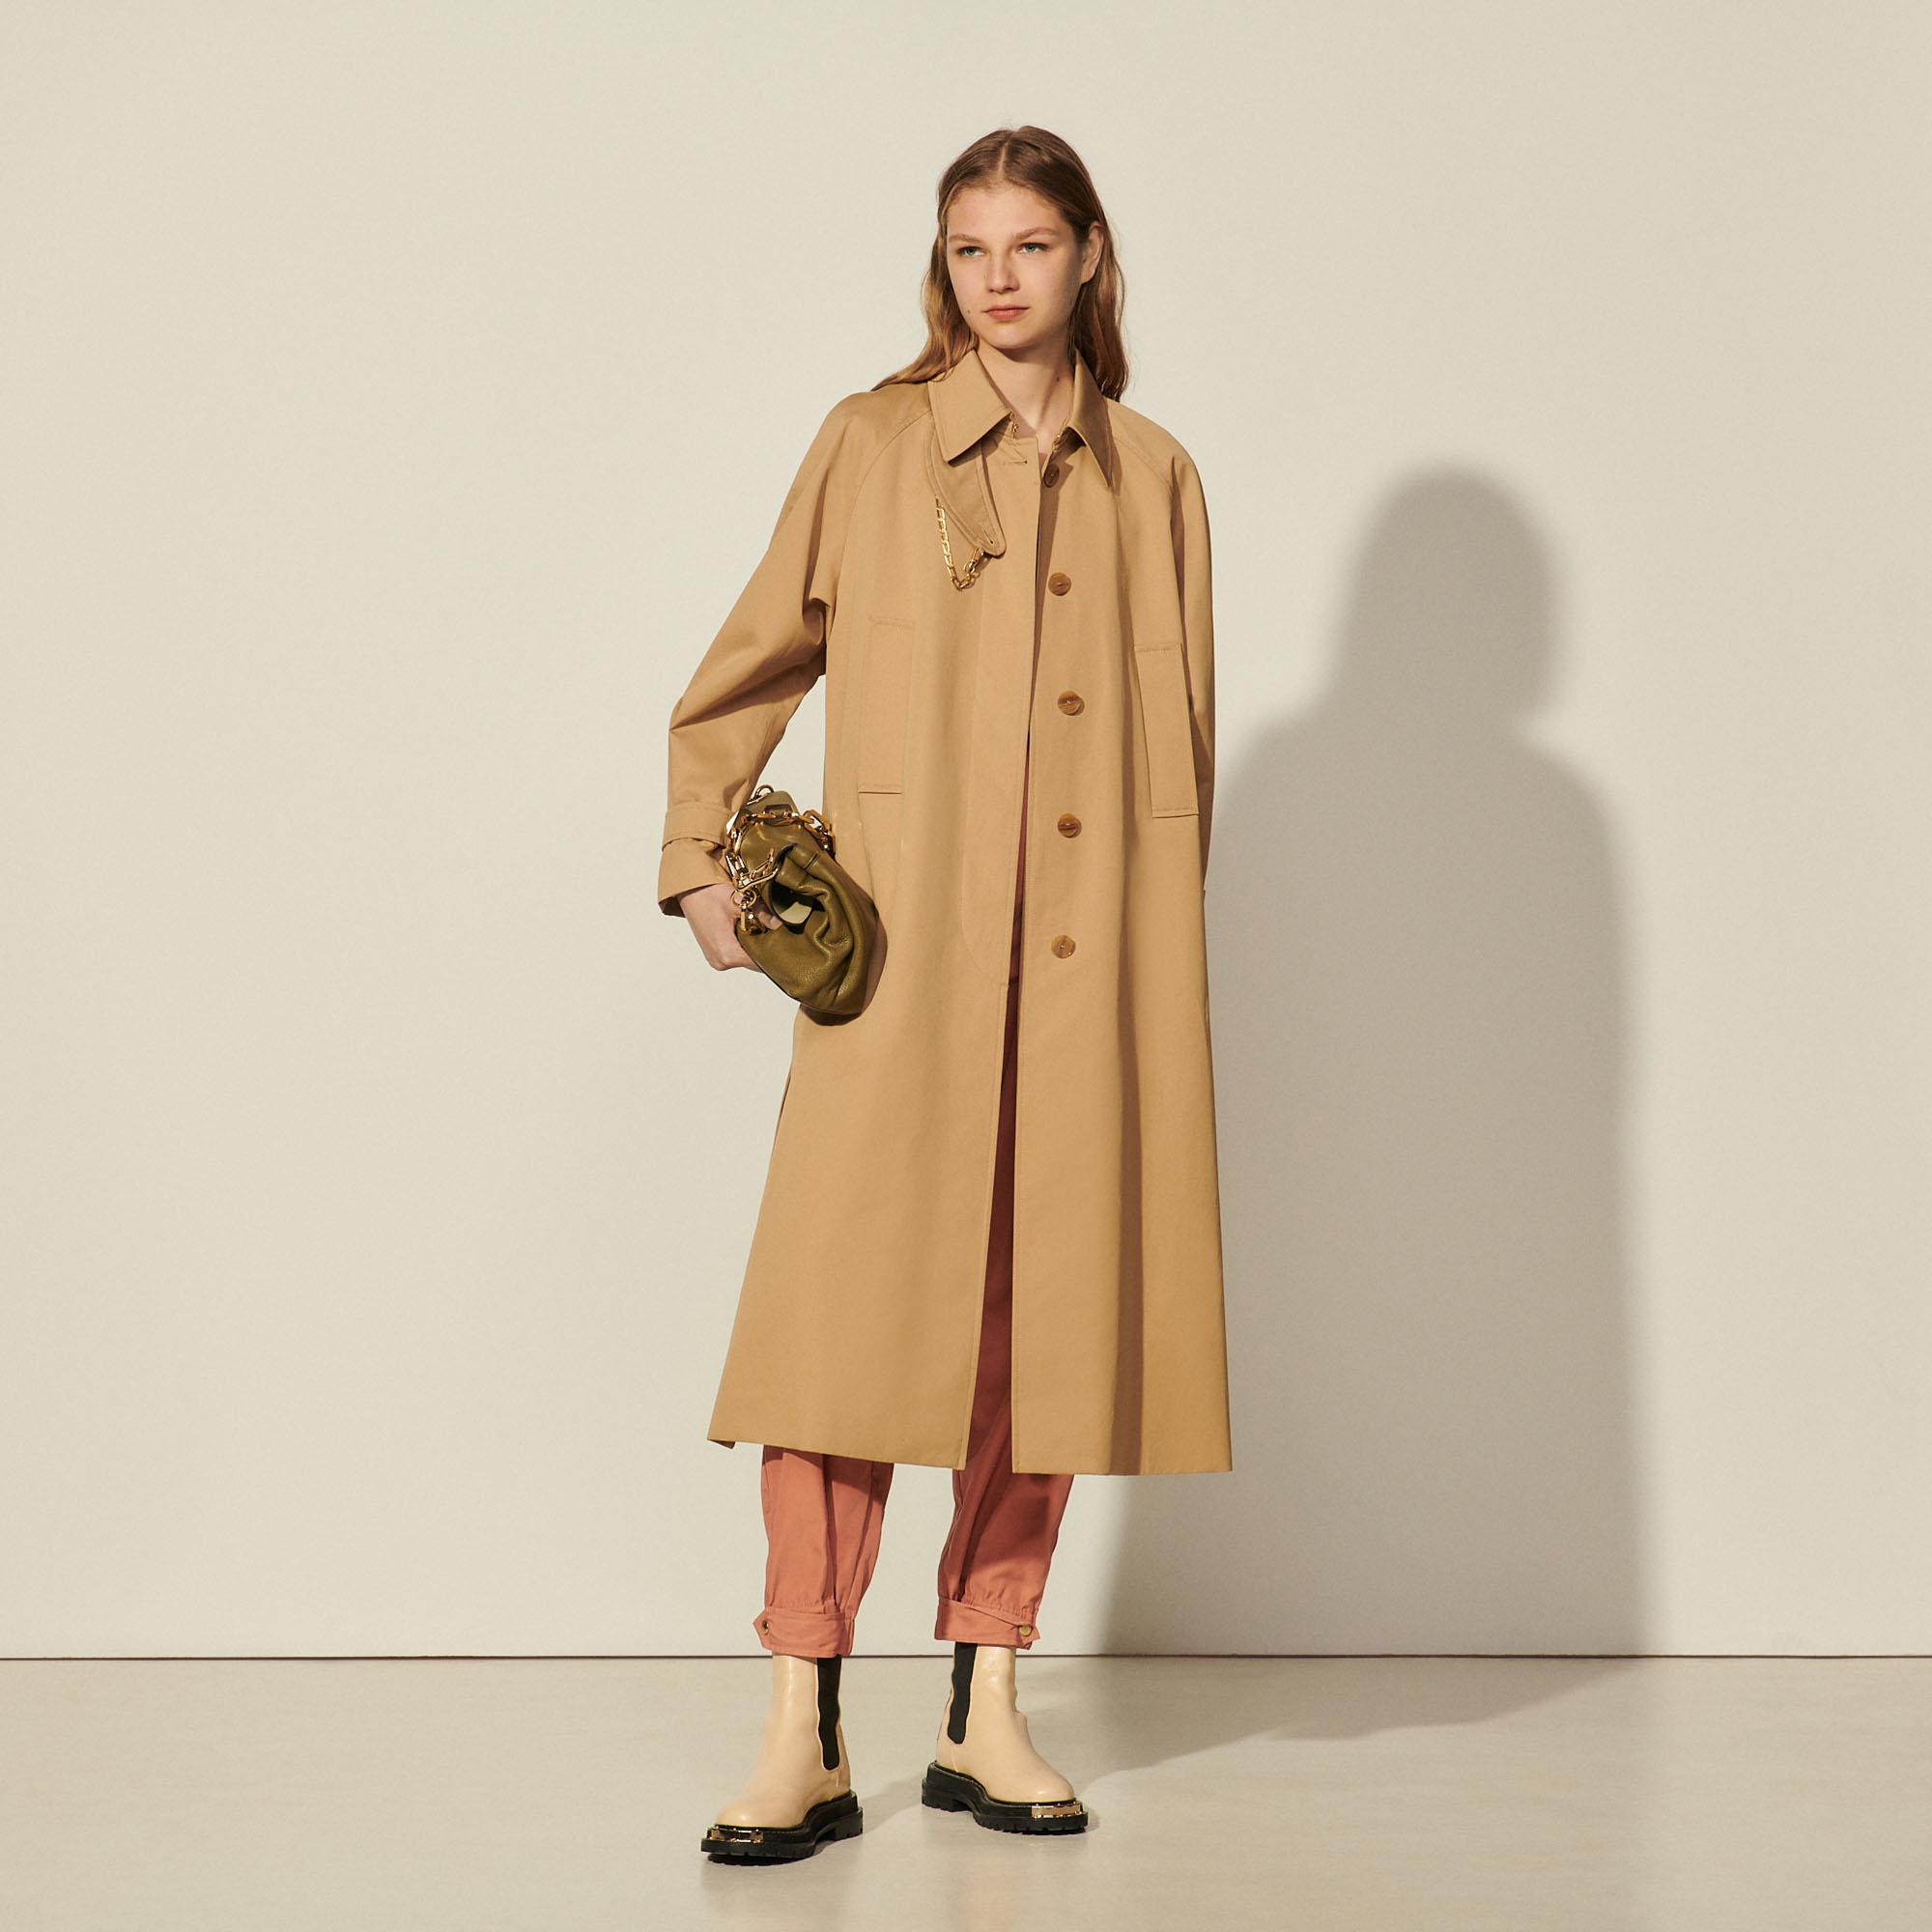 Cotton trench coat with detachable chain